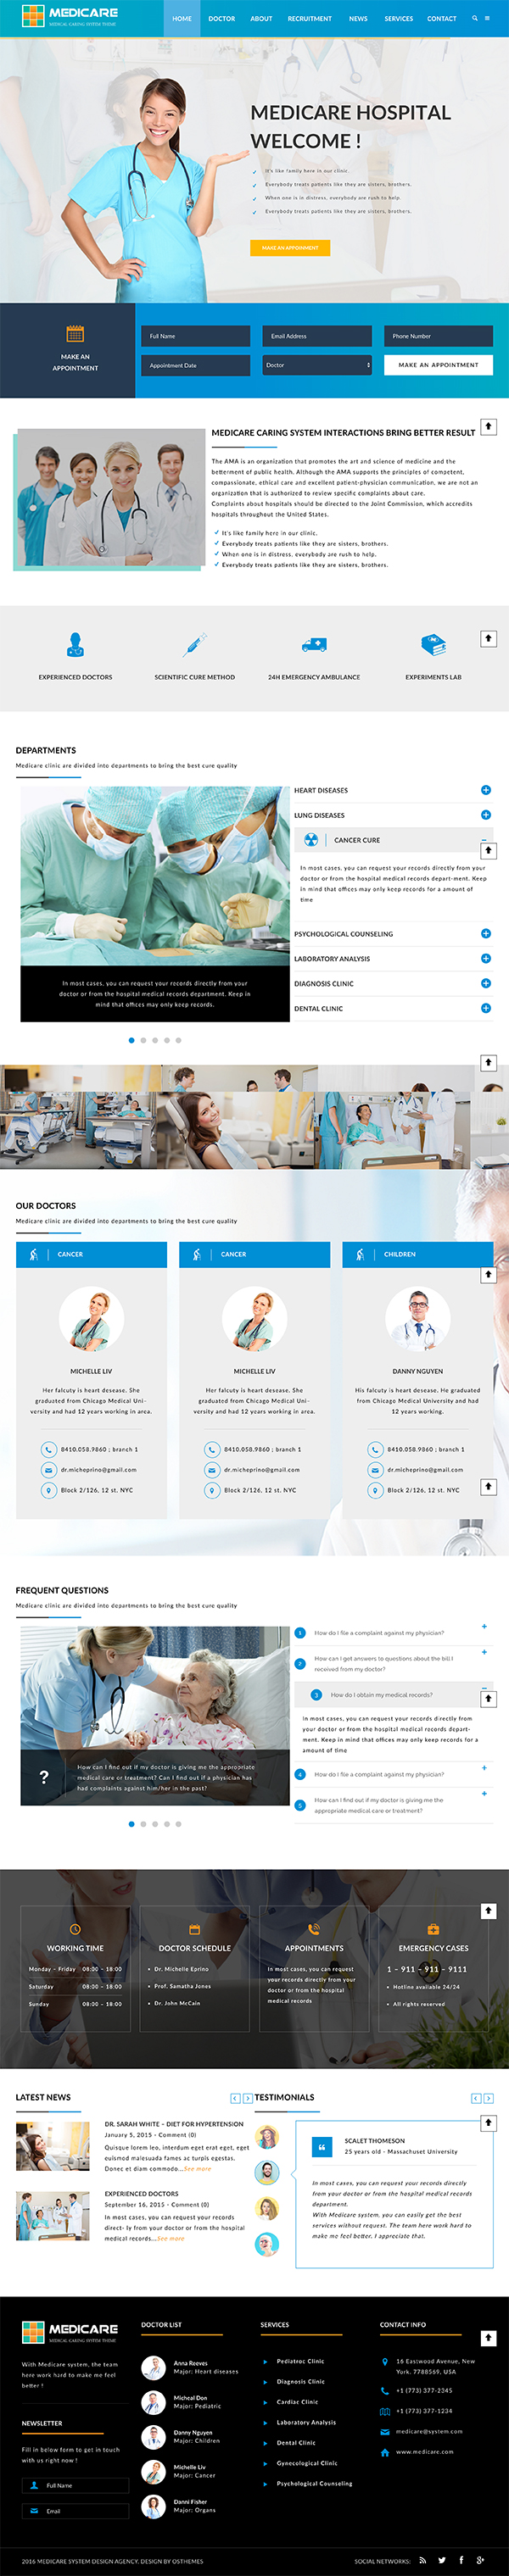 14 Medicare - Medical and Health Responsive WordPress Theme